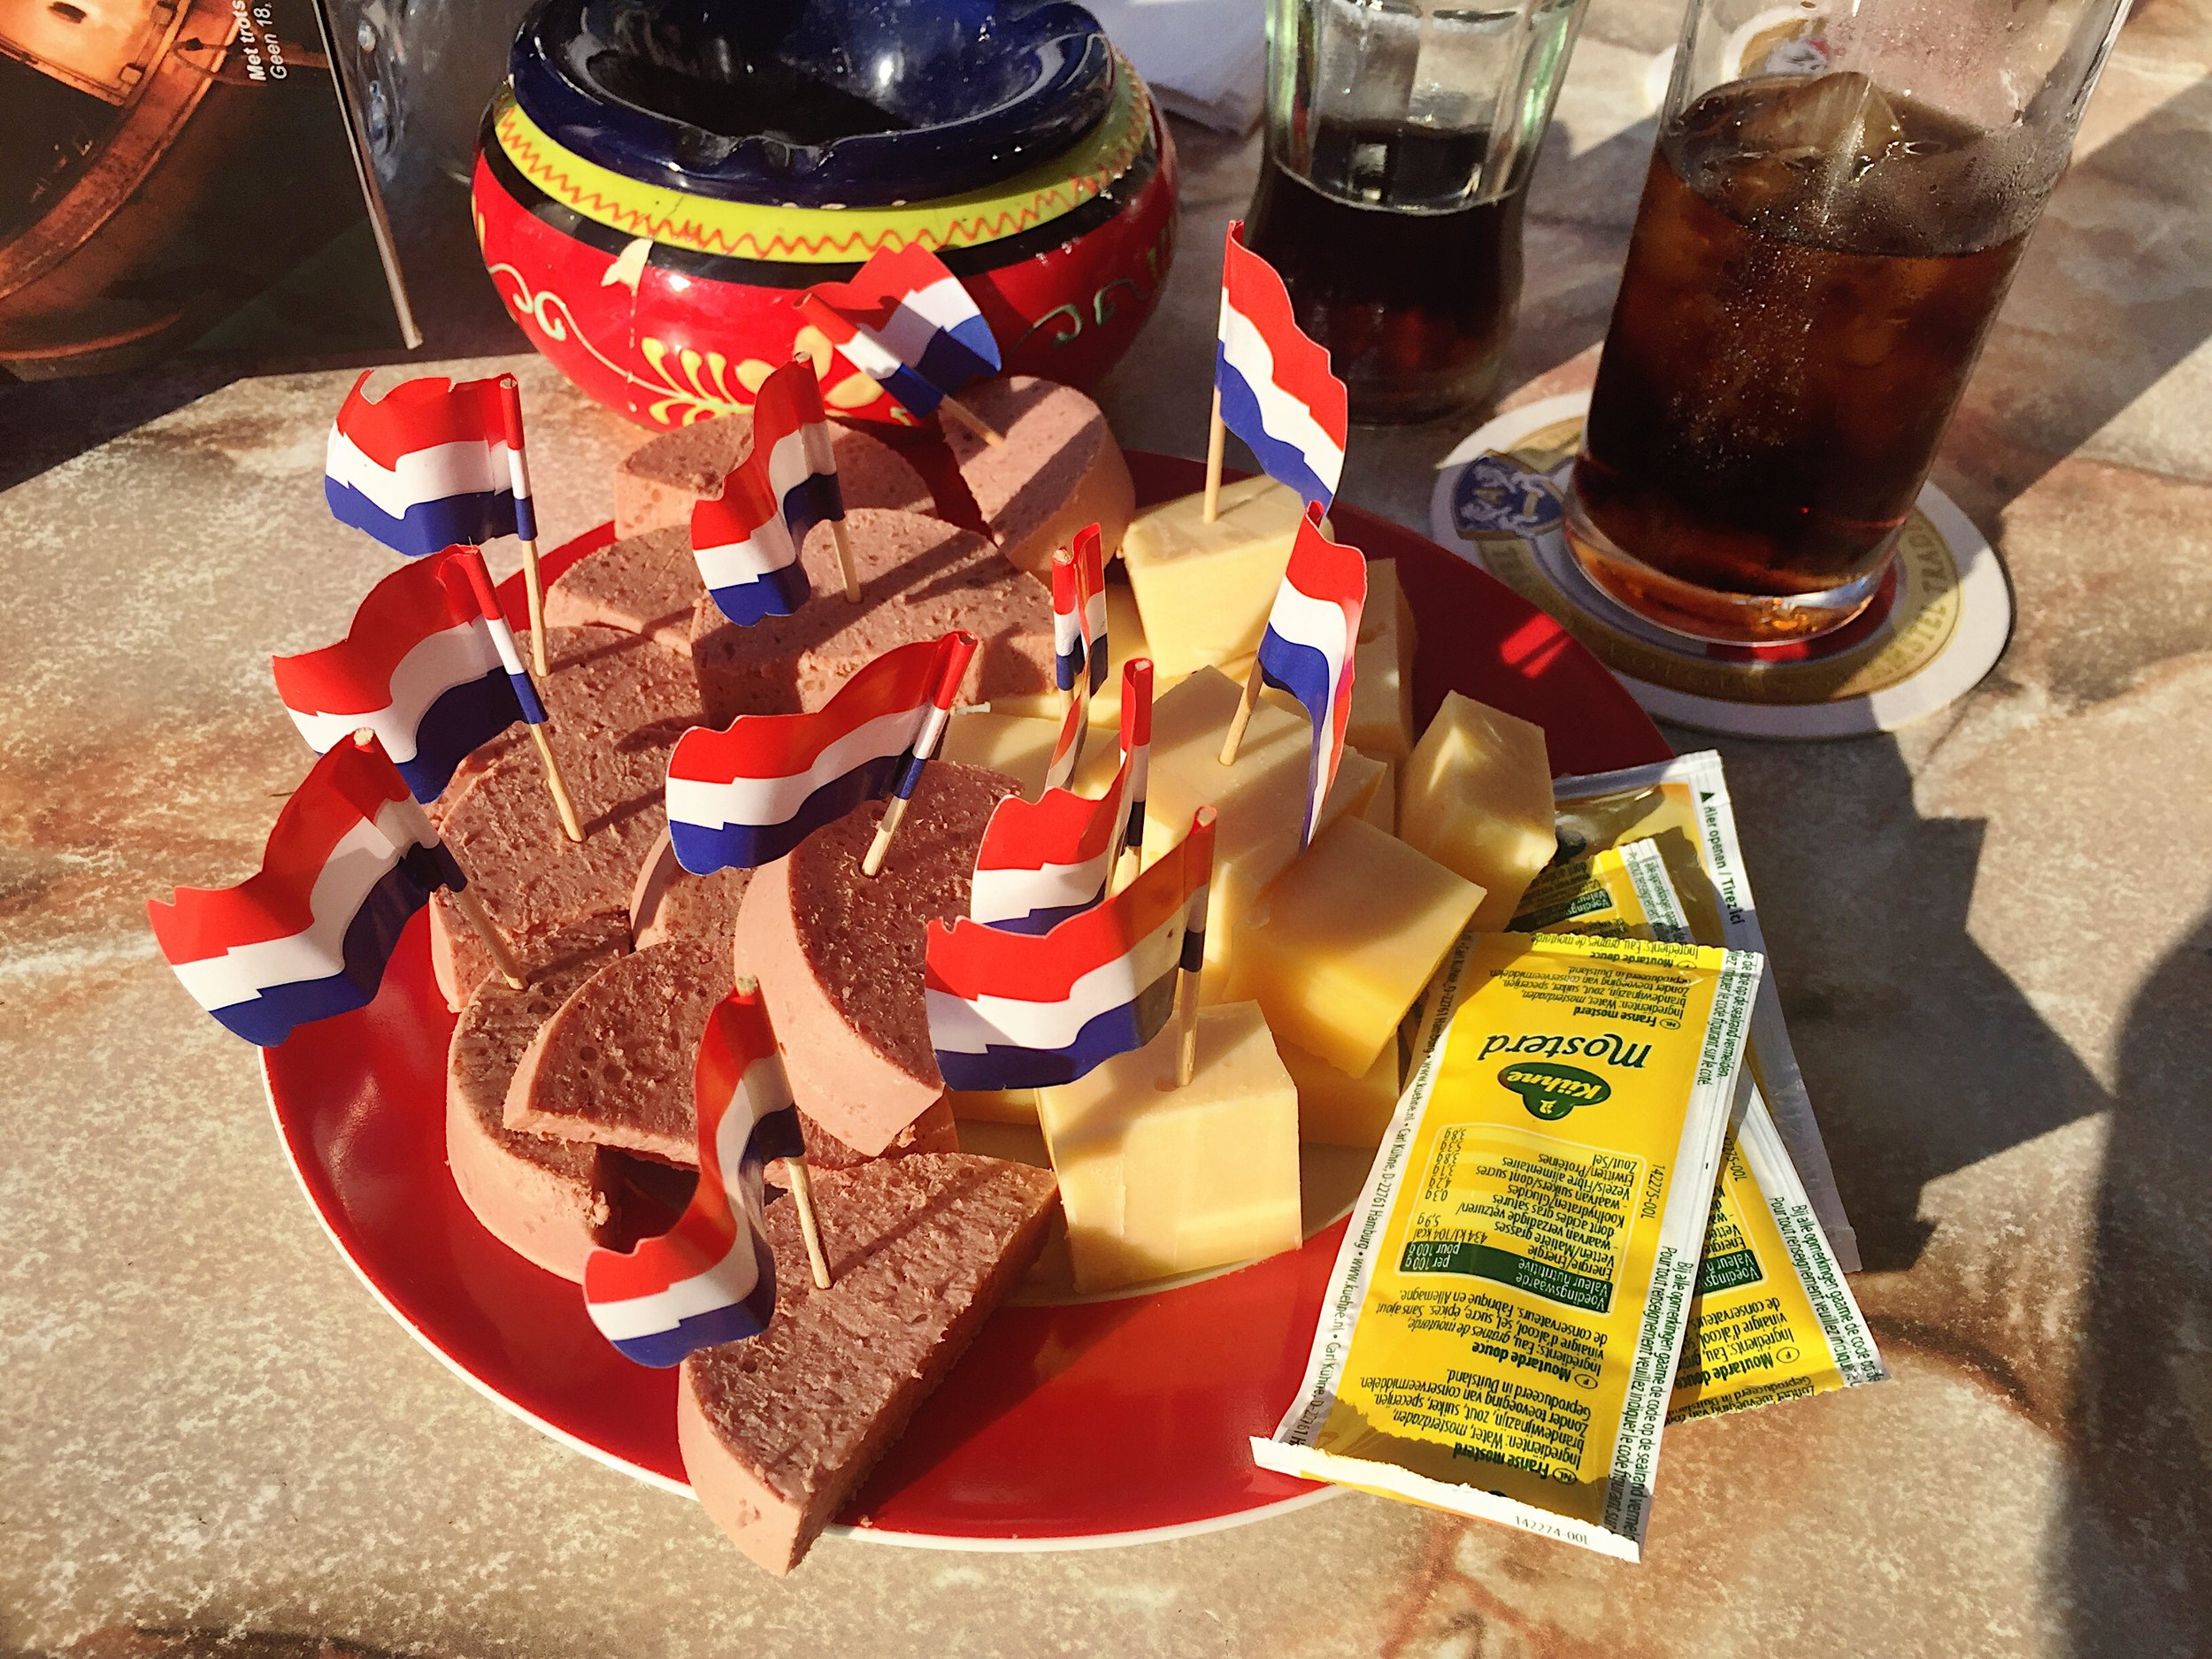 Liverwurst and cheese and mustard and the Dutch flag x 12